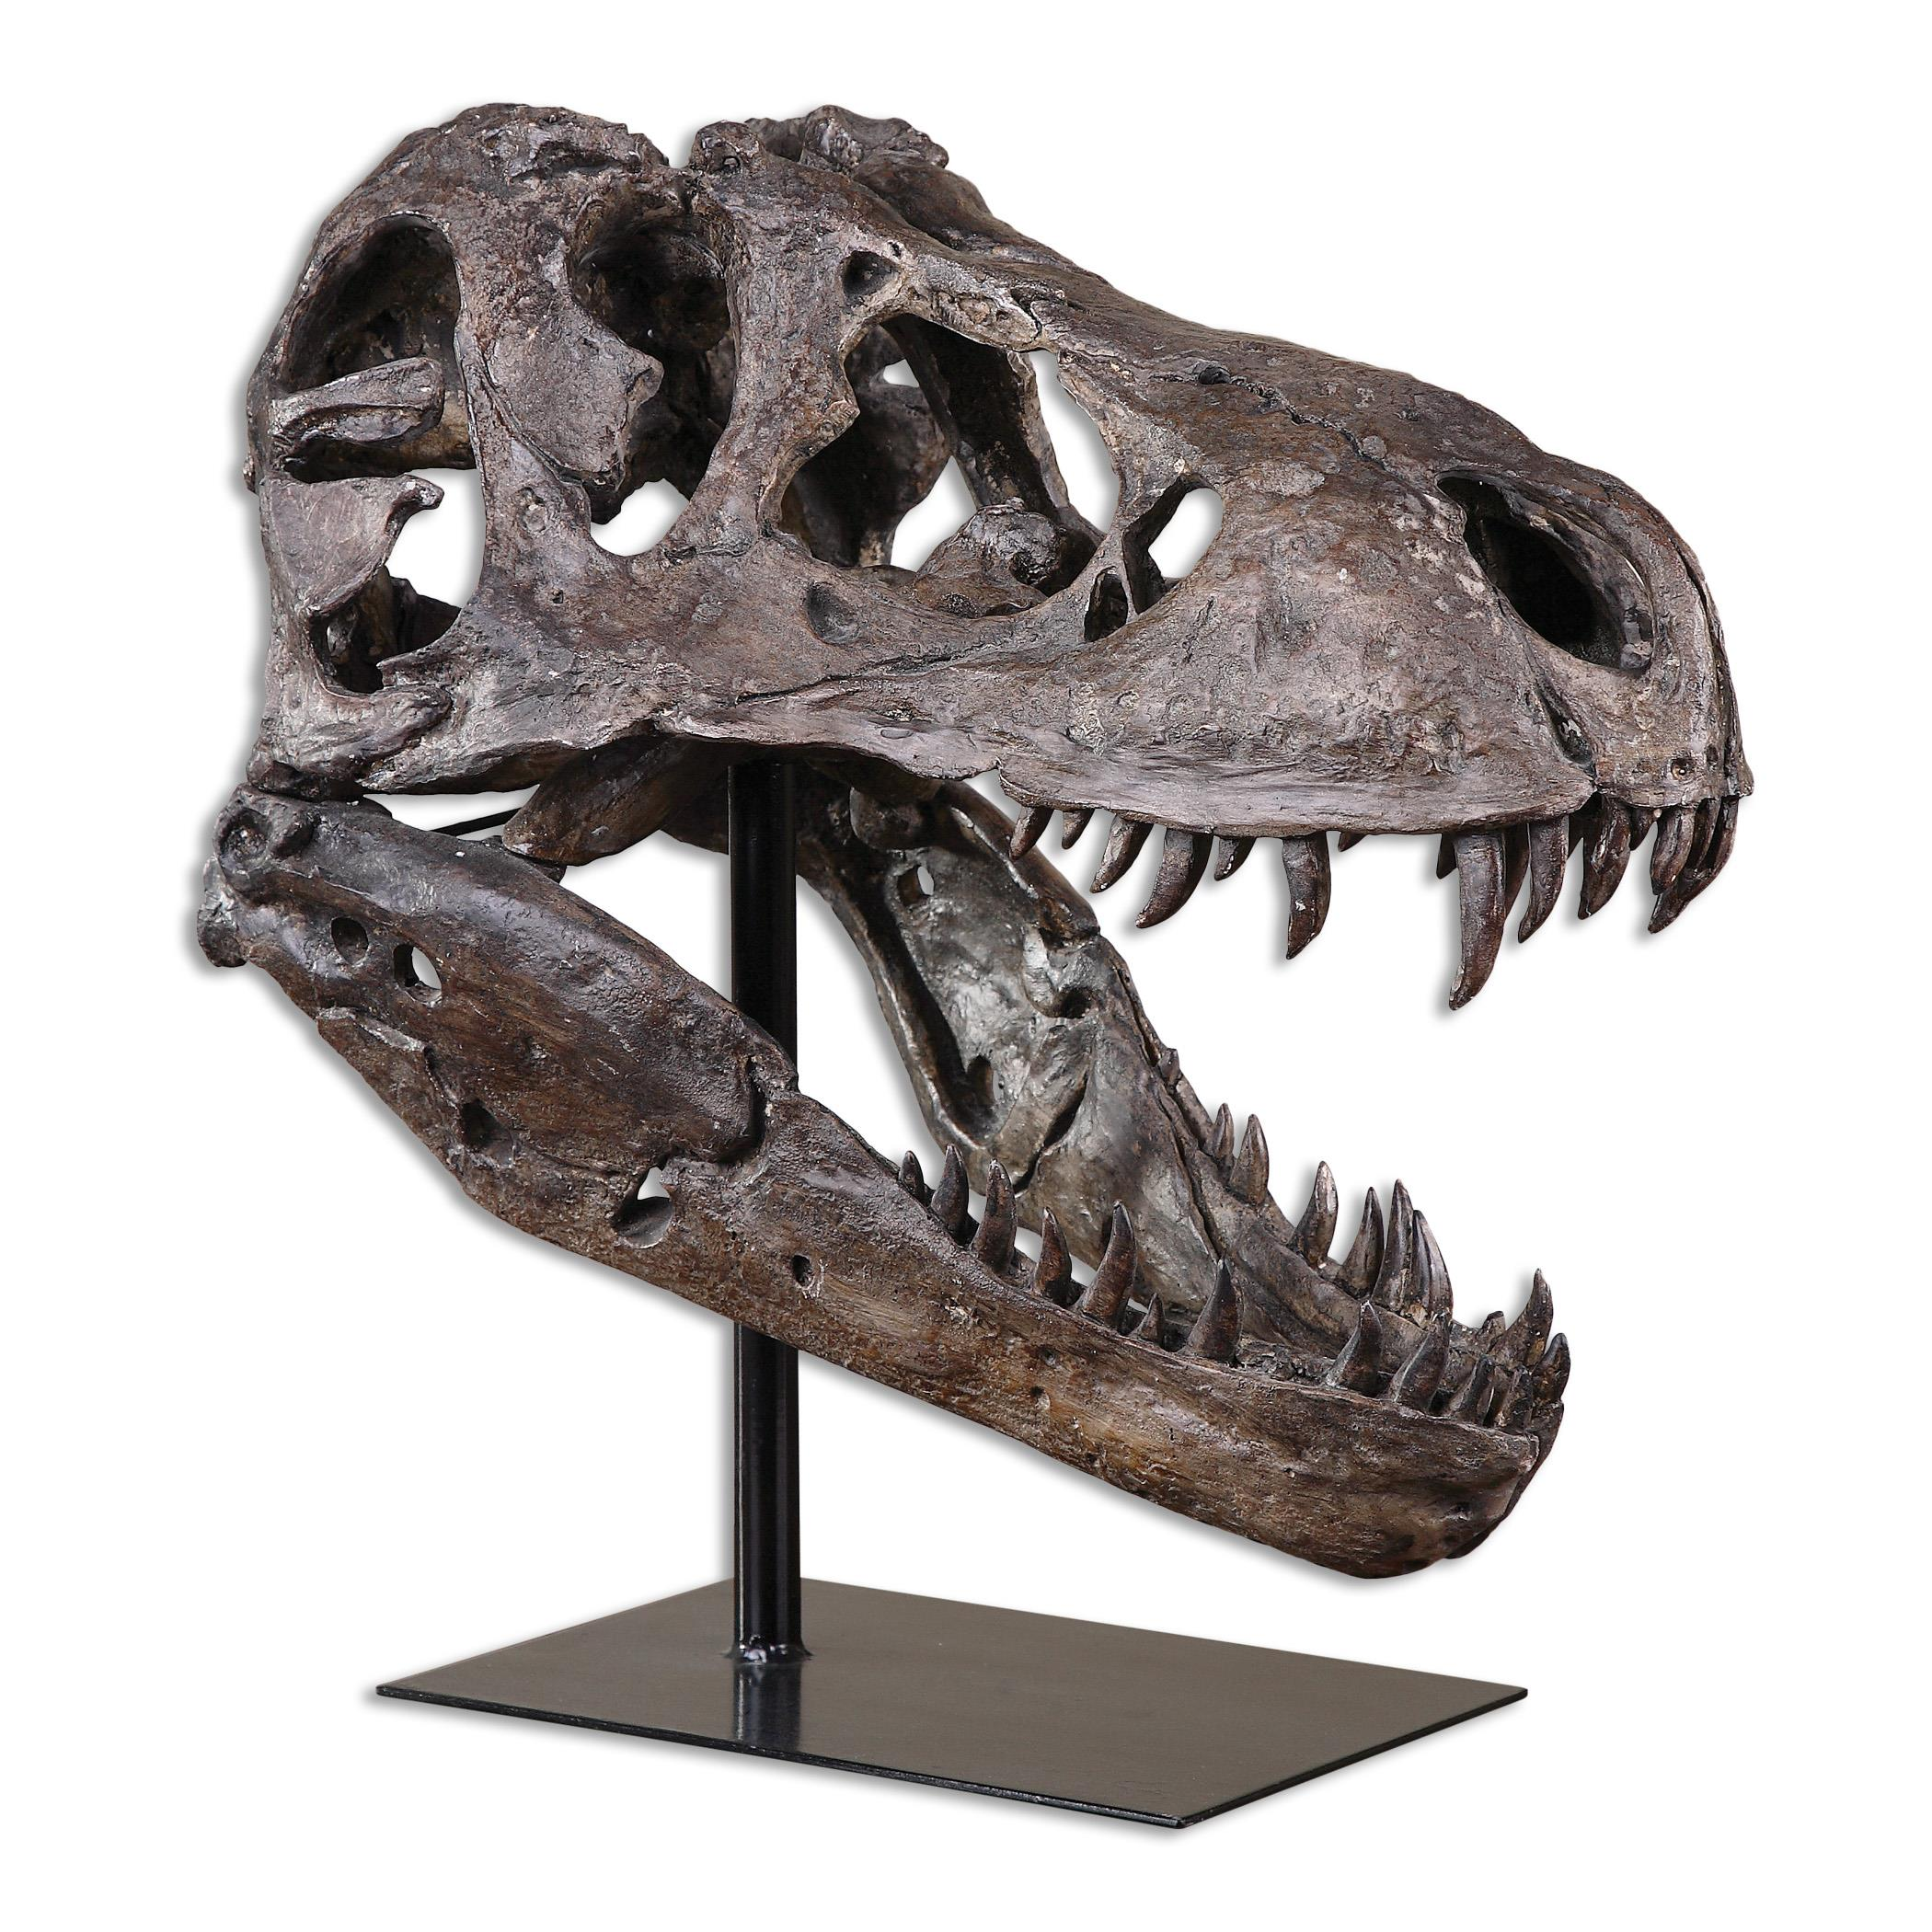 Uttermost Accessories Tyrannosaurus Sculpture - Item Number: 19948